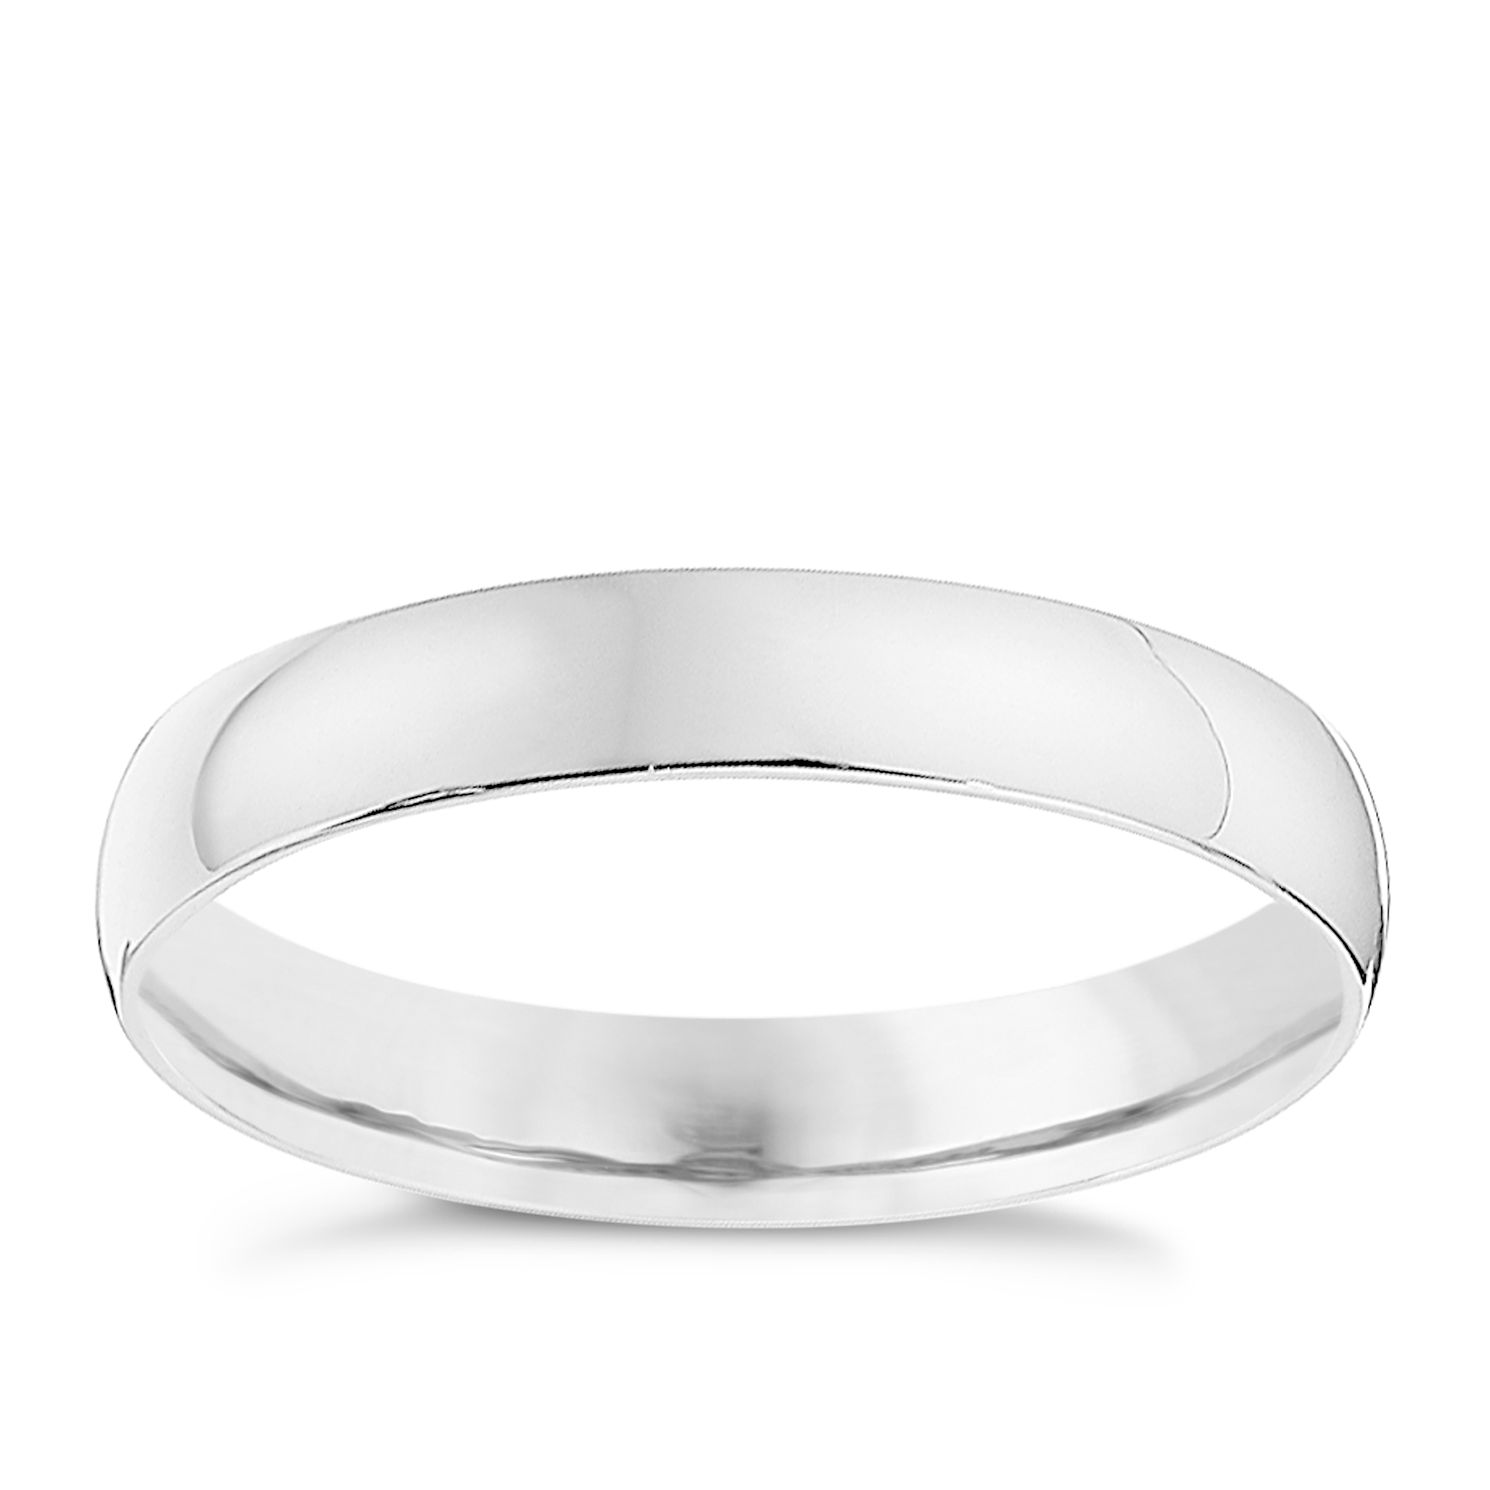 9ct White Gold 3mm Heavy D Shape Ring   Product Number 8682879